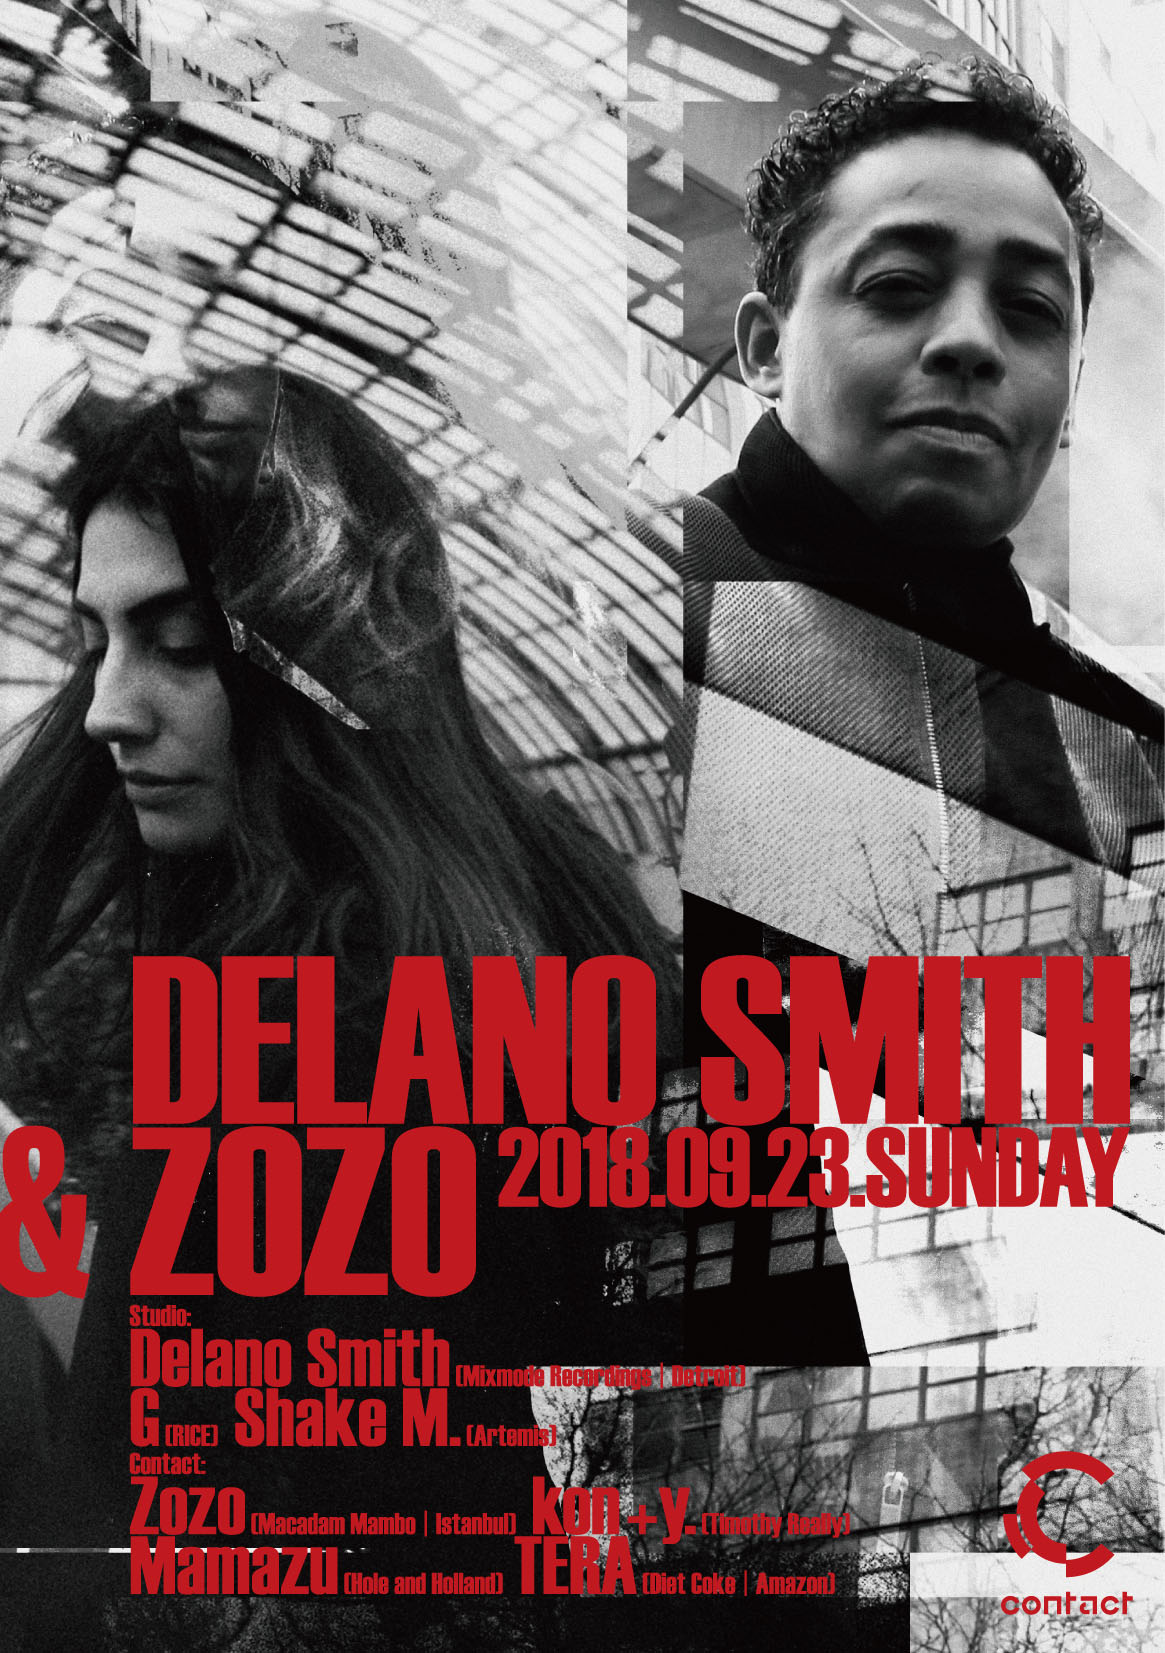 Delano Smith Zozo